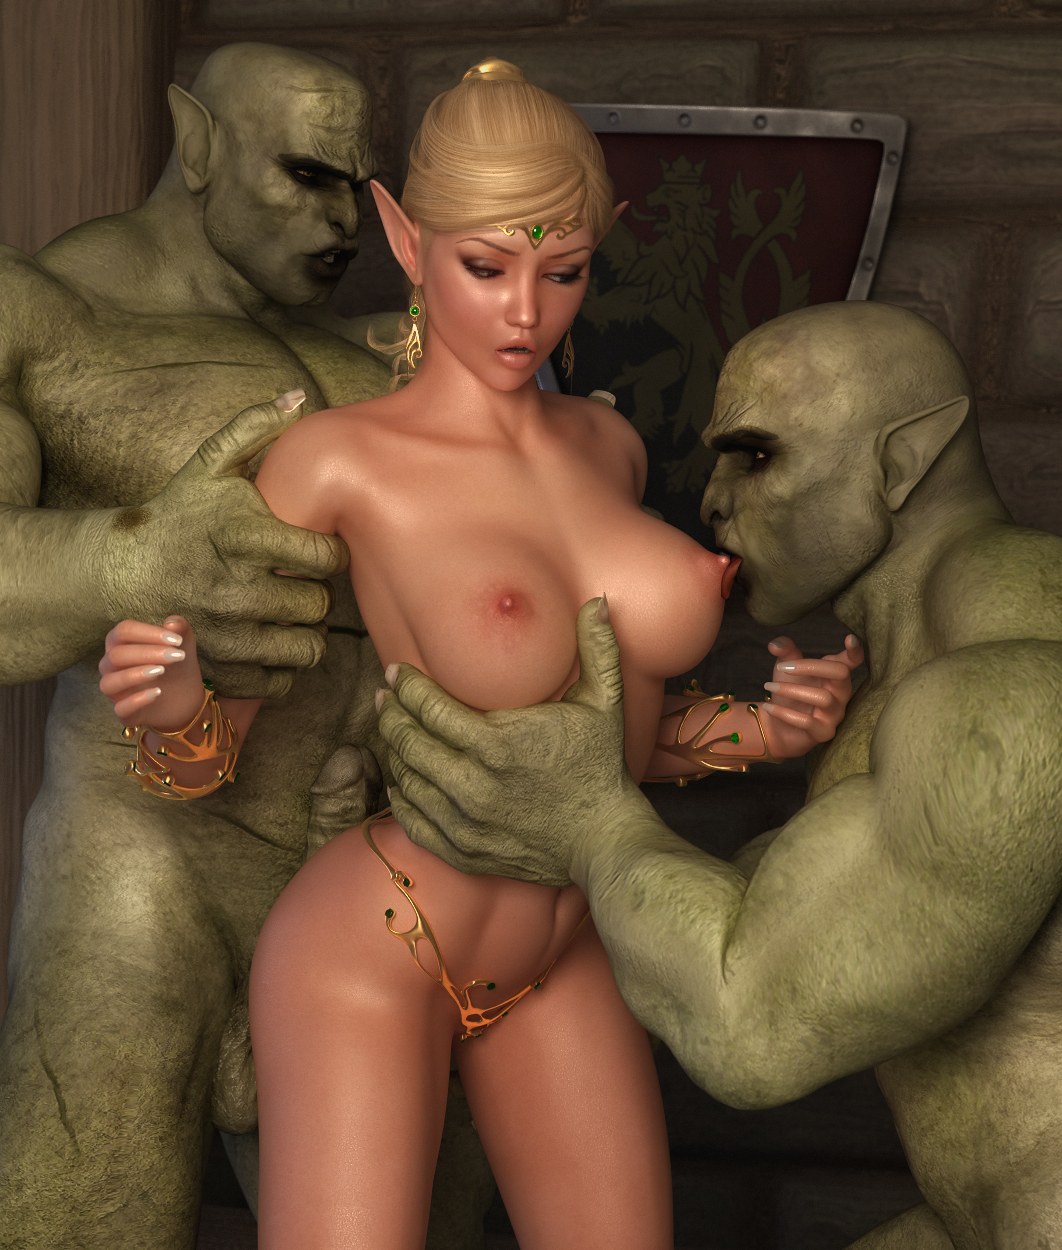 Free Sexy 3D Animation Porn fallout sex mod animated sex - megapornx